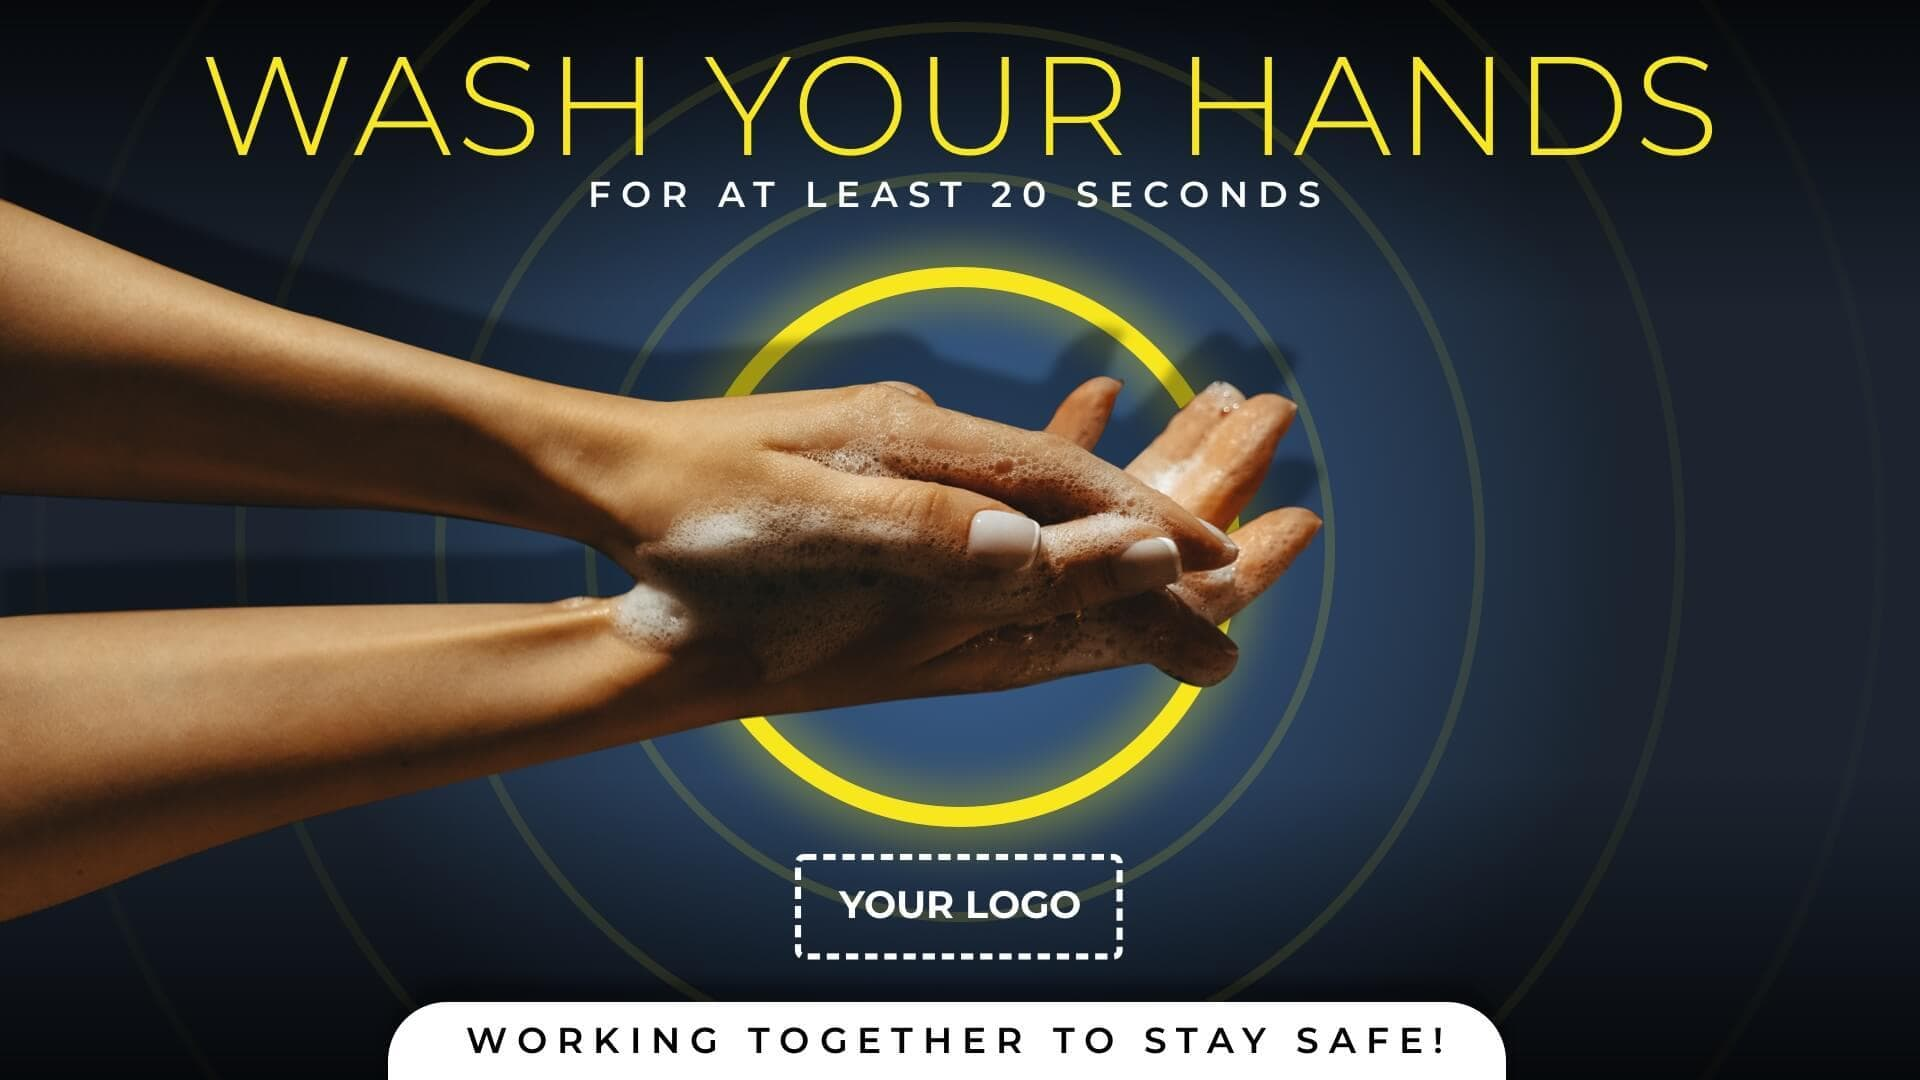 Digital signage showing a message to wash your hands for at least 20 seconds.